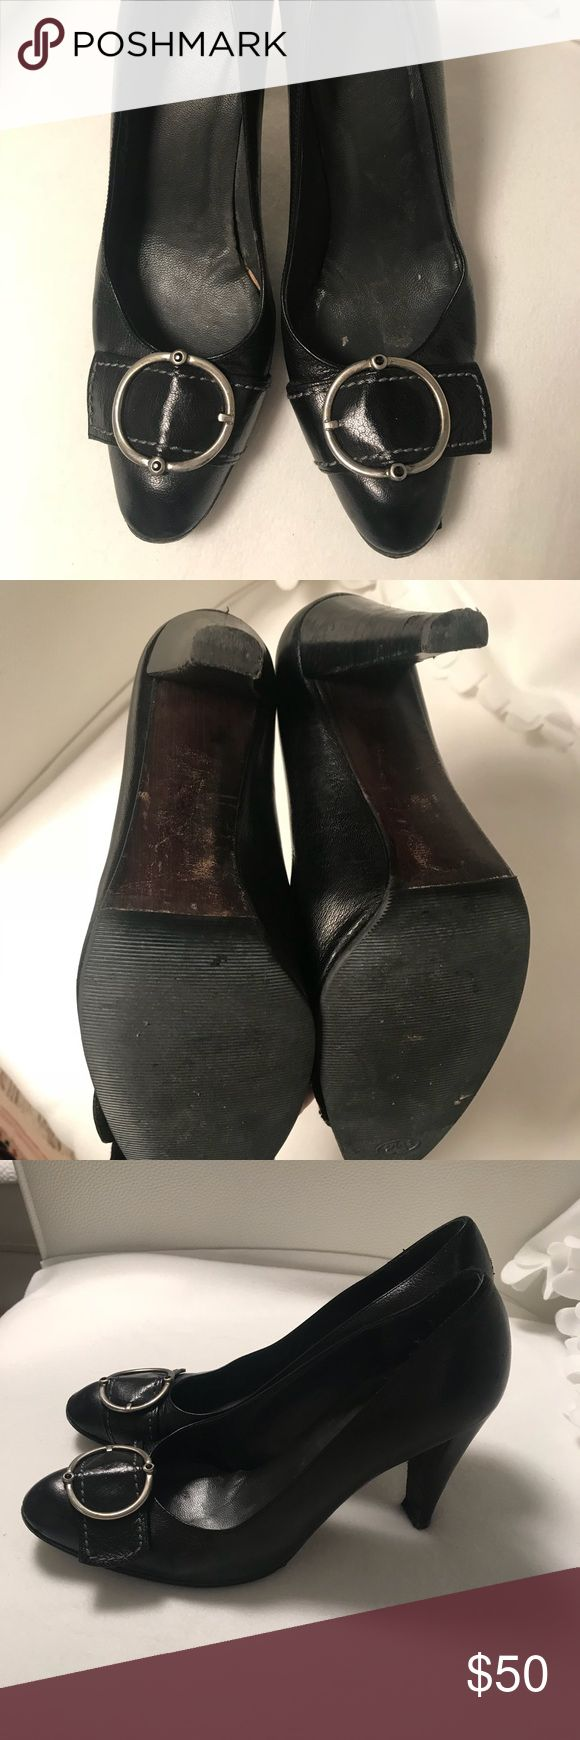 Stuart Weitzman Black Pump Perfect for work or nailing that interview !  Work but like all my shoes in excellent condition with sole protectors and new heels.   🖤🖤 Stuart Weitzman Shoes Heels